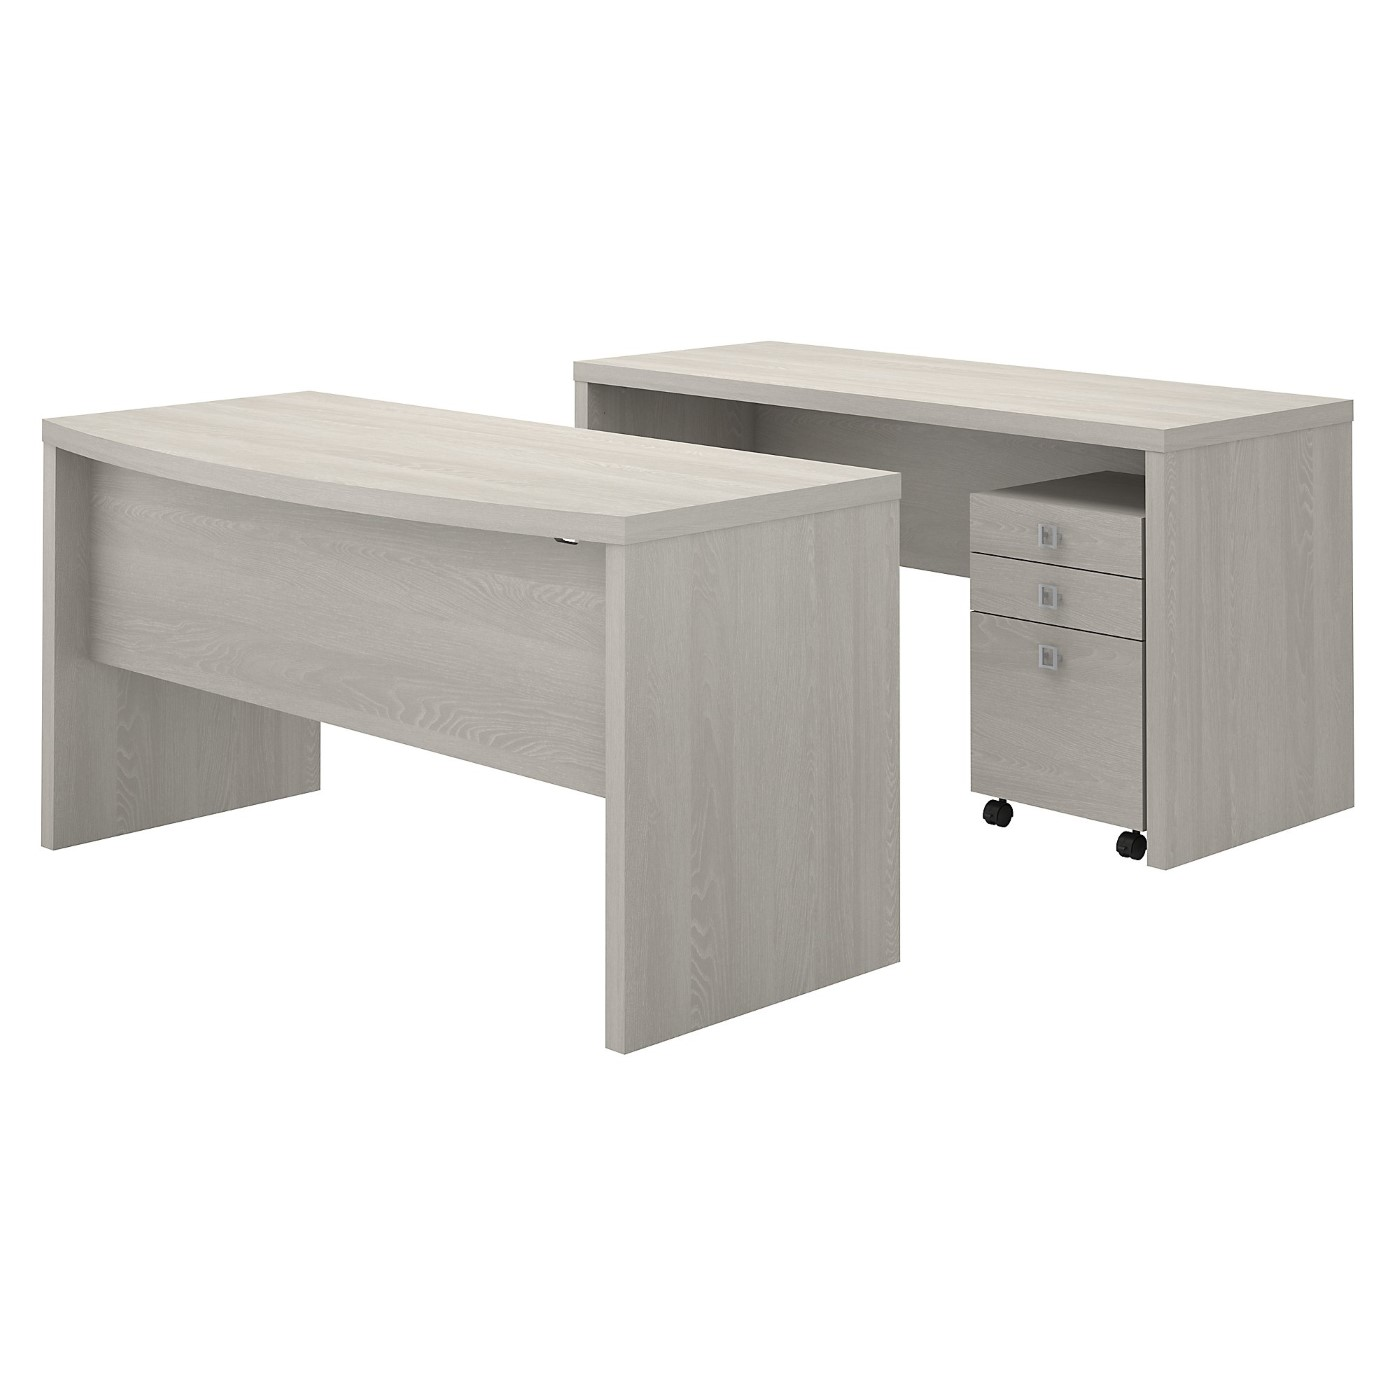 The kathy ireland� Echo Bow Front Desk and Credenza with Mobile File Cabinet is Sustainable Eco Friendly Furniture. Includes Free Shipping! 30H x 72L x 72W.